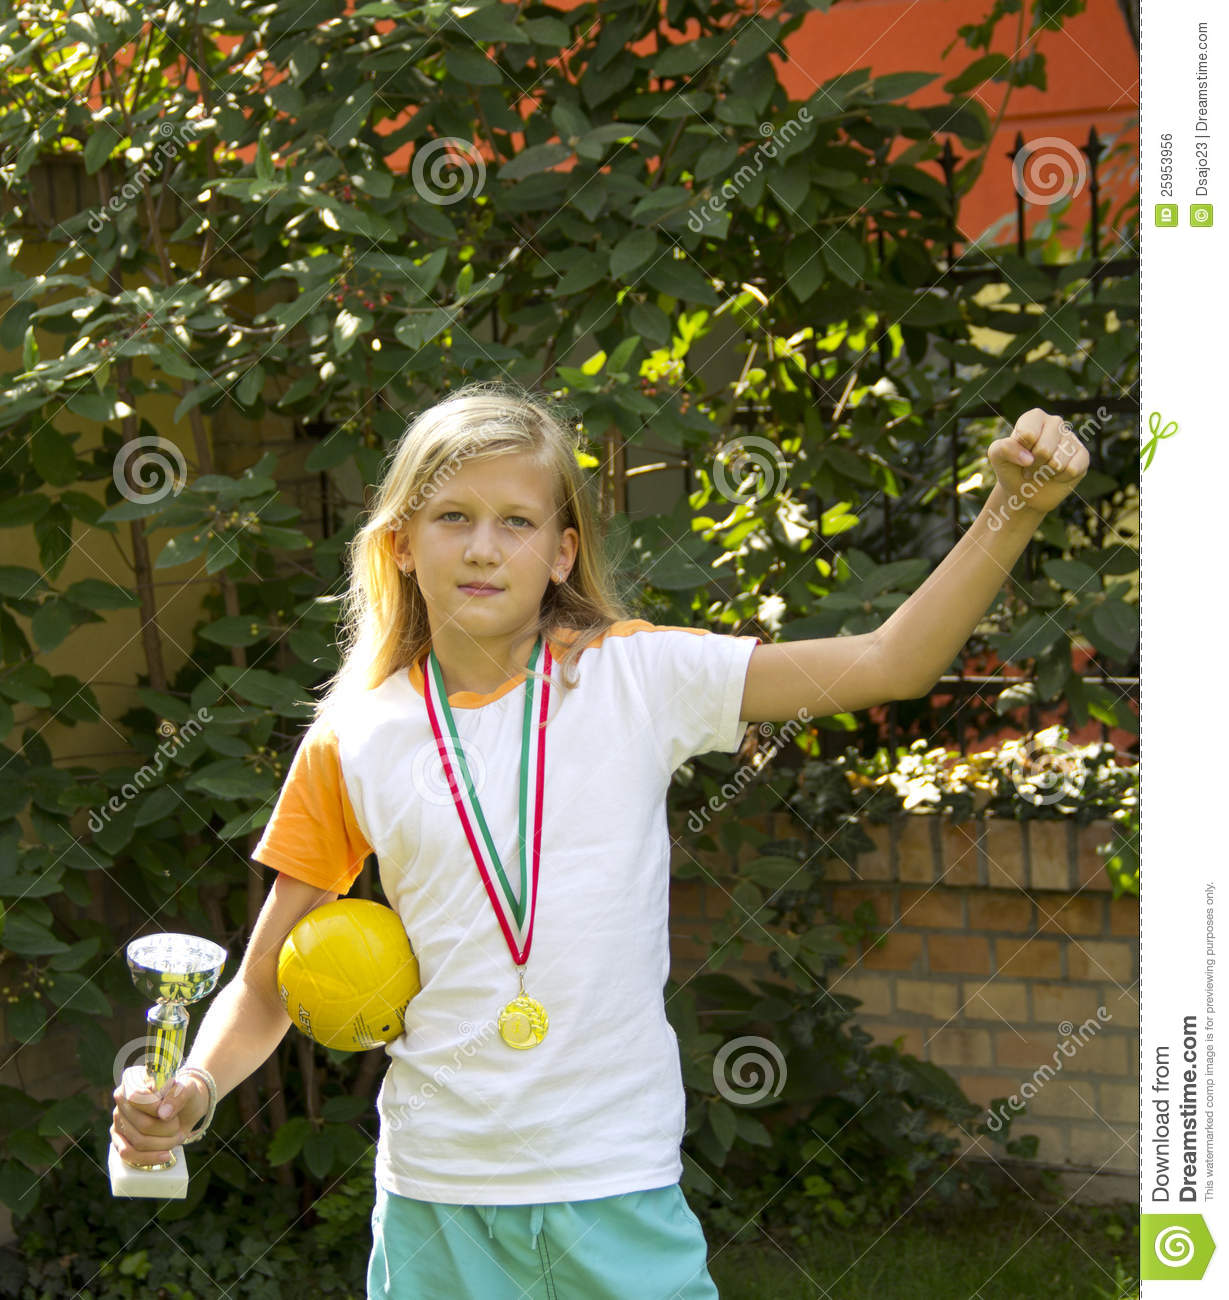 Pretty Girl With Sports Medal And Cup Royalty Free Stock